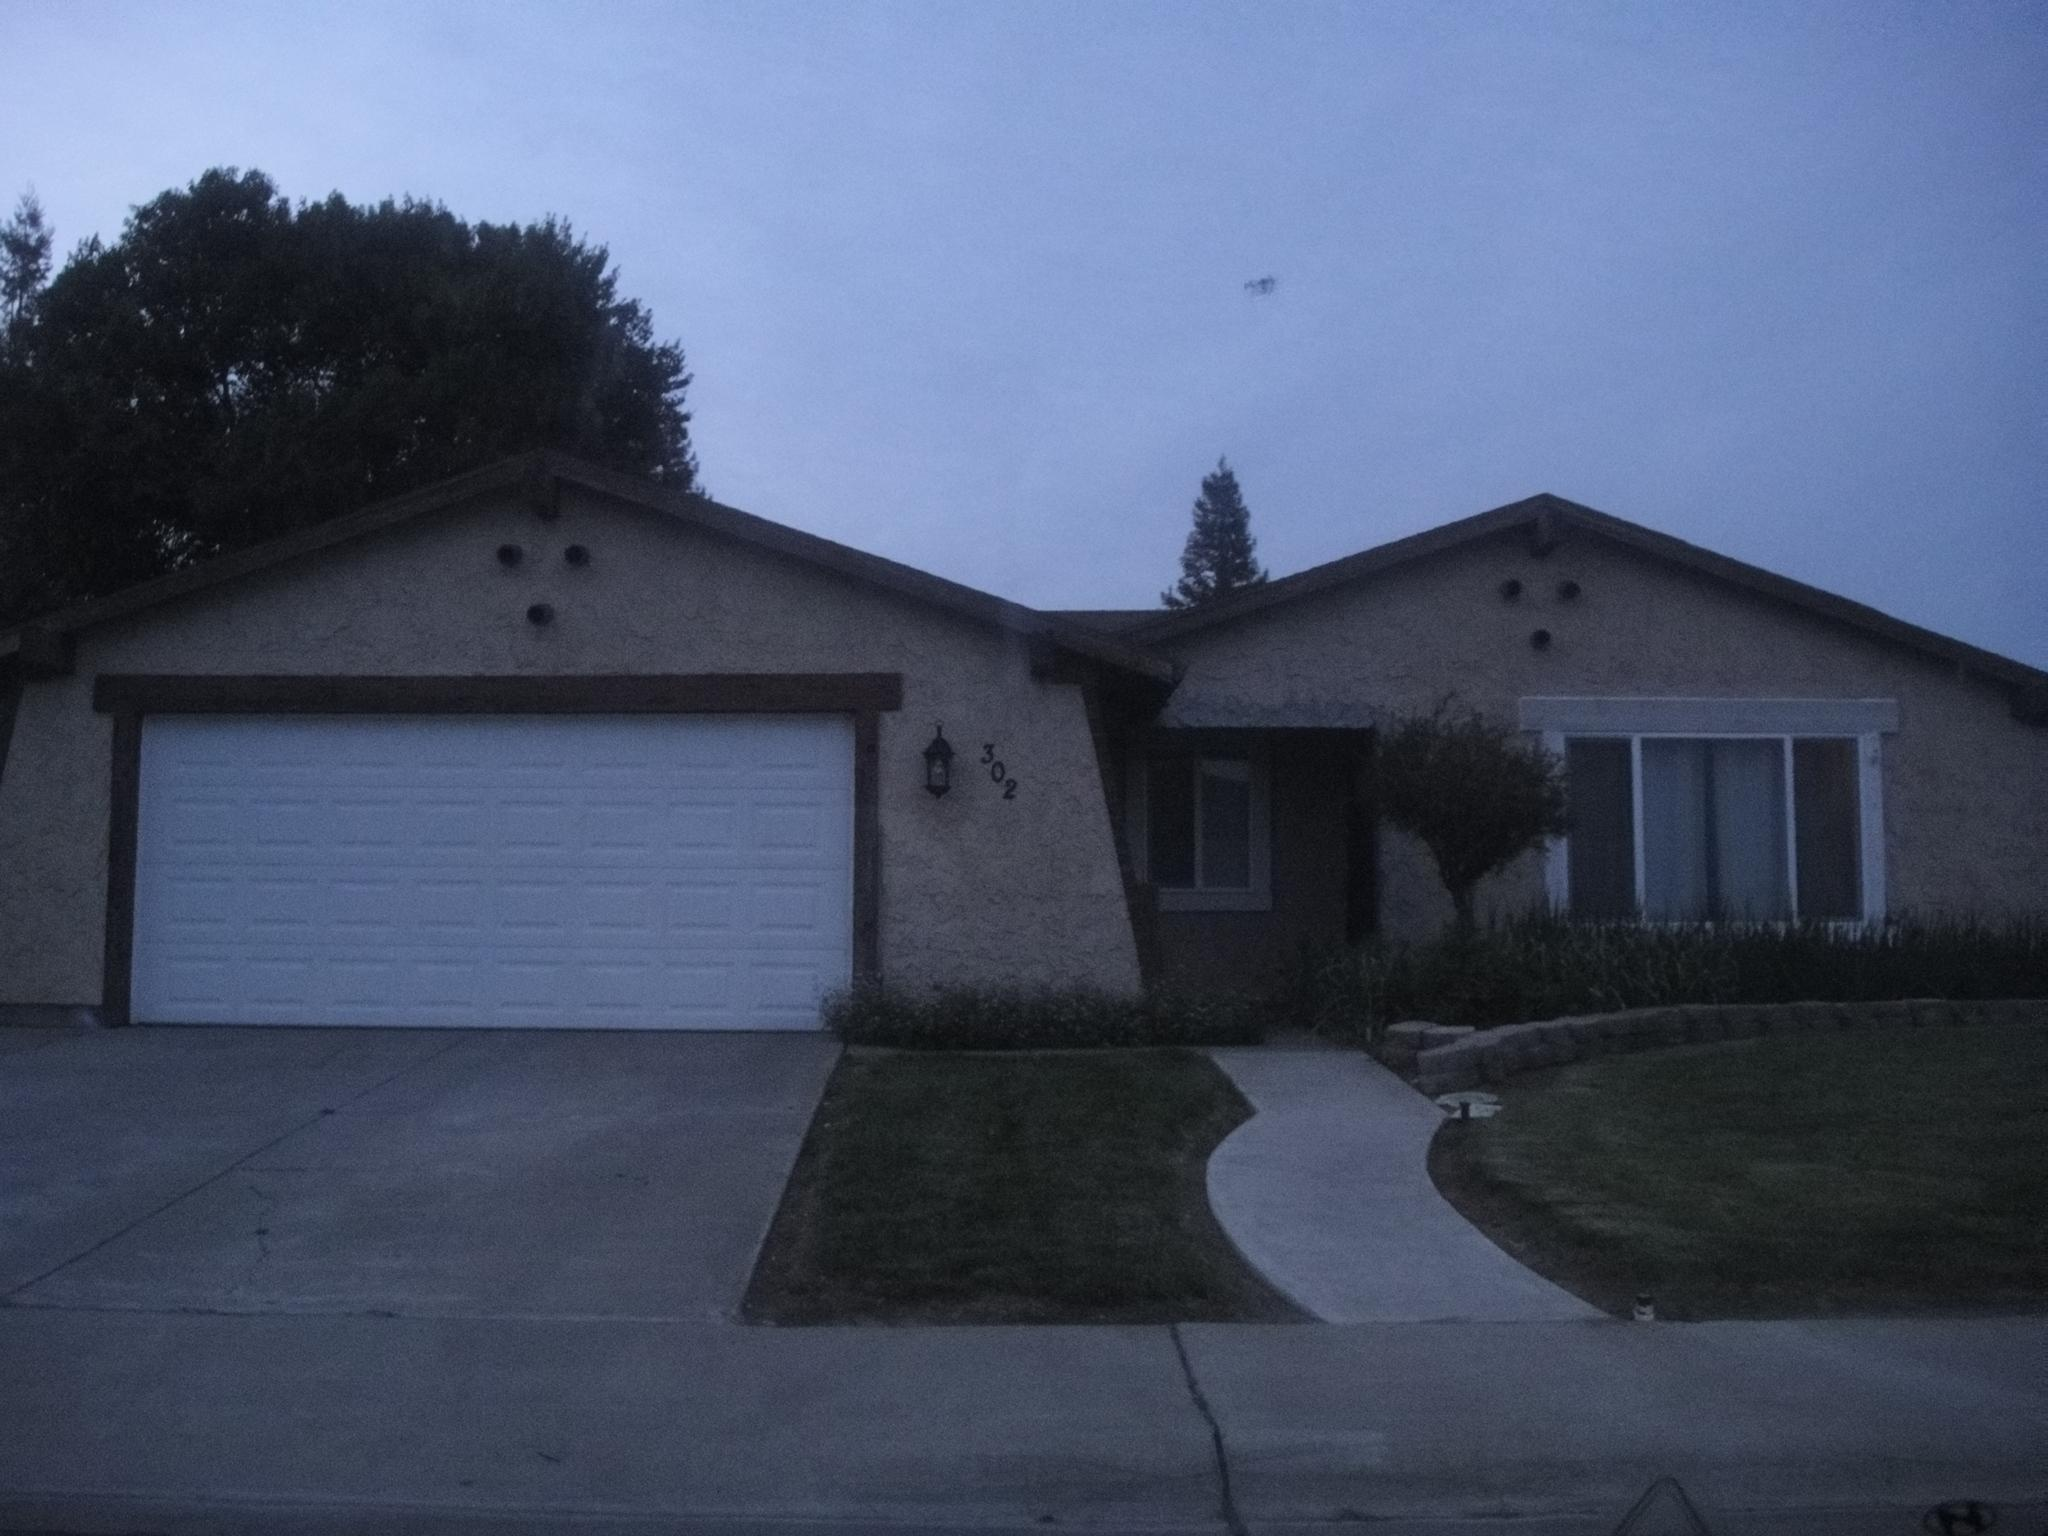 302 Valleywood Dr, Woodland, CA 95695